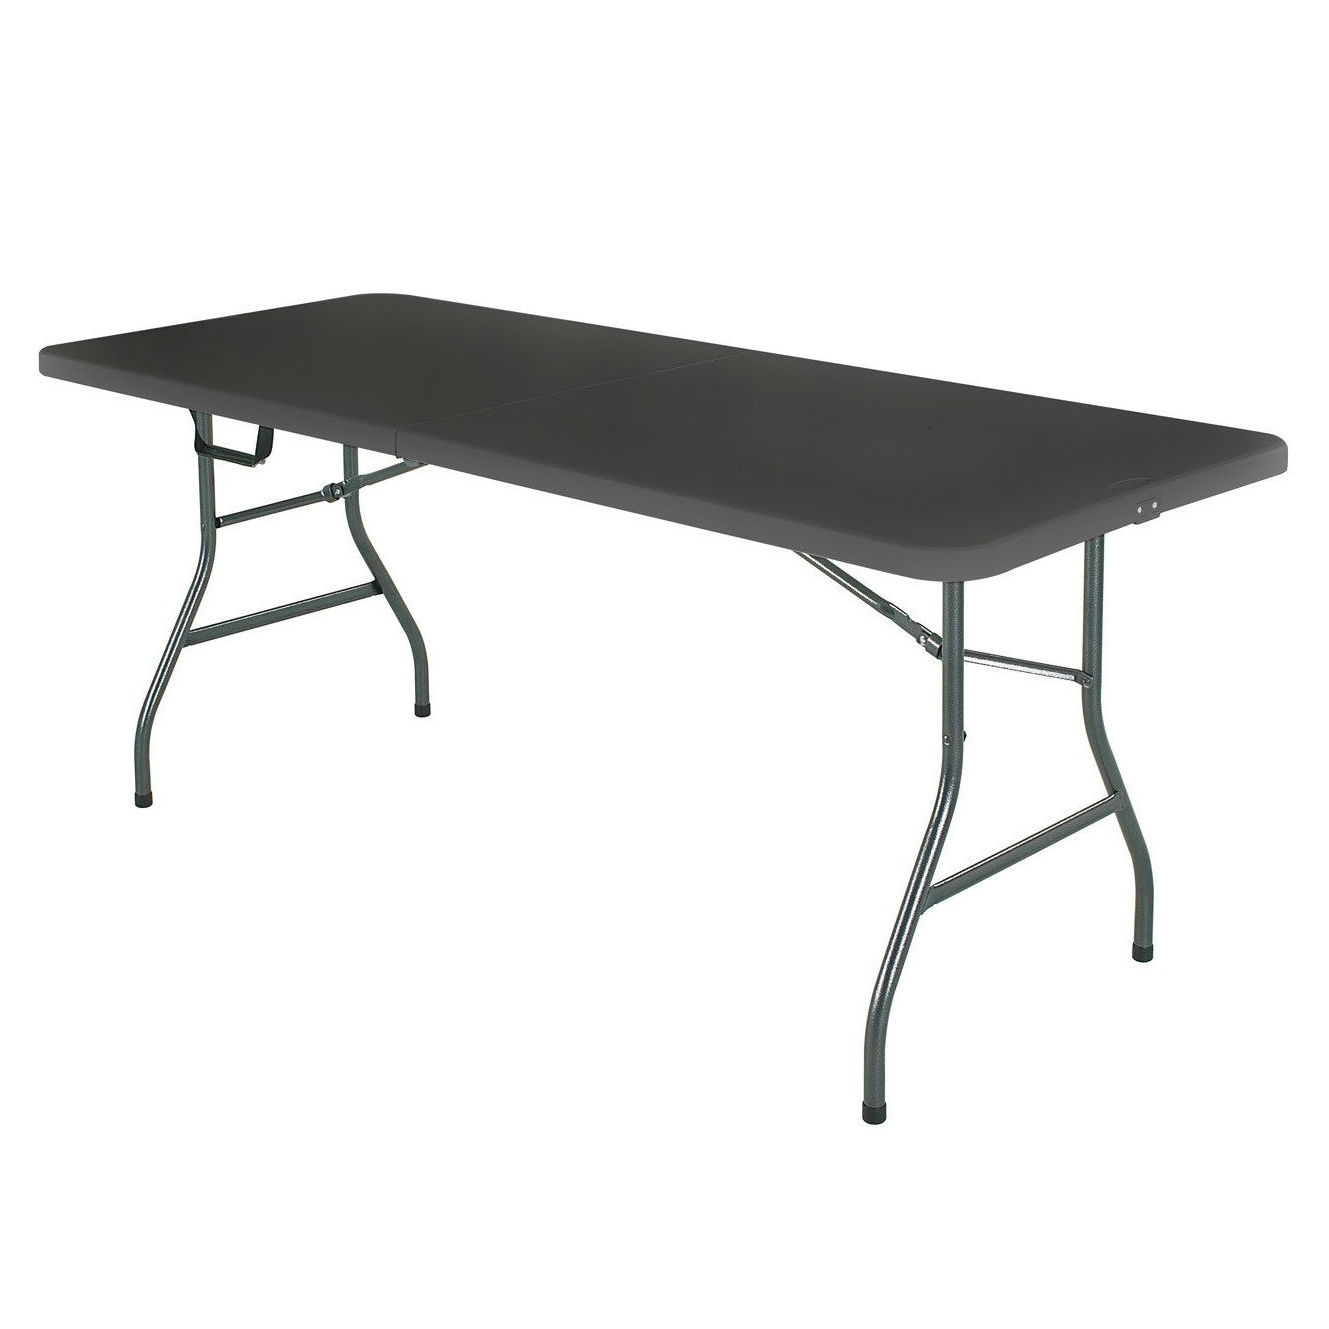 Black 6 Ft Centerfold Folding Table With Weather Resistant Top Fastfurnishings Com